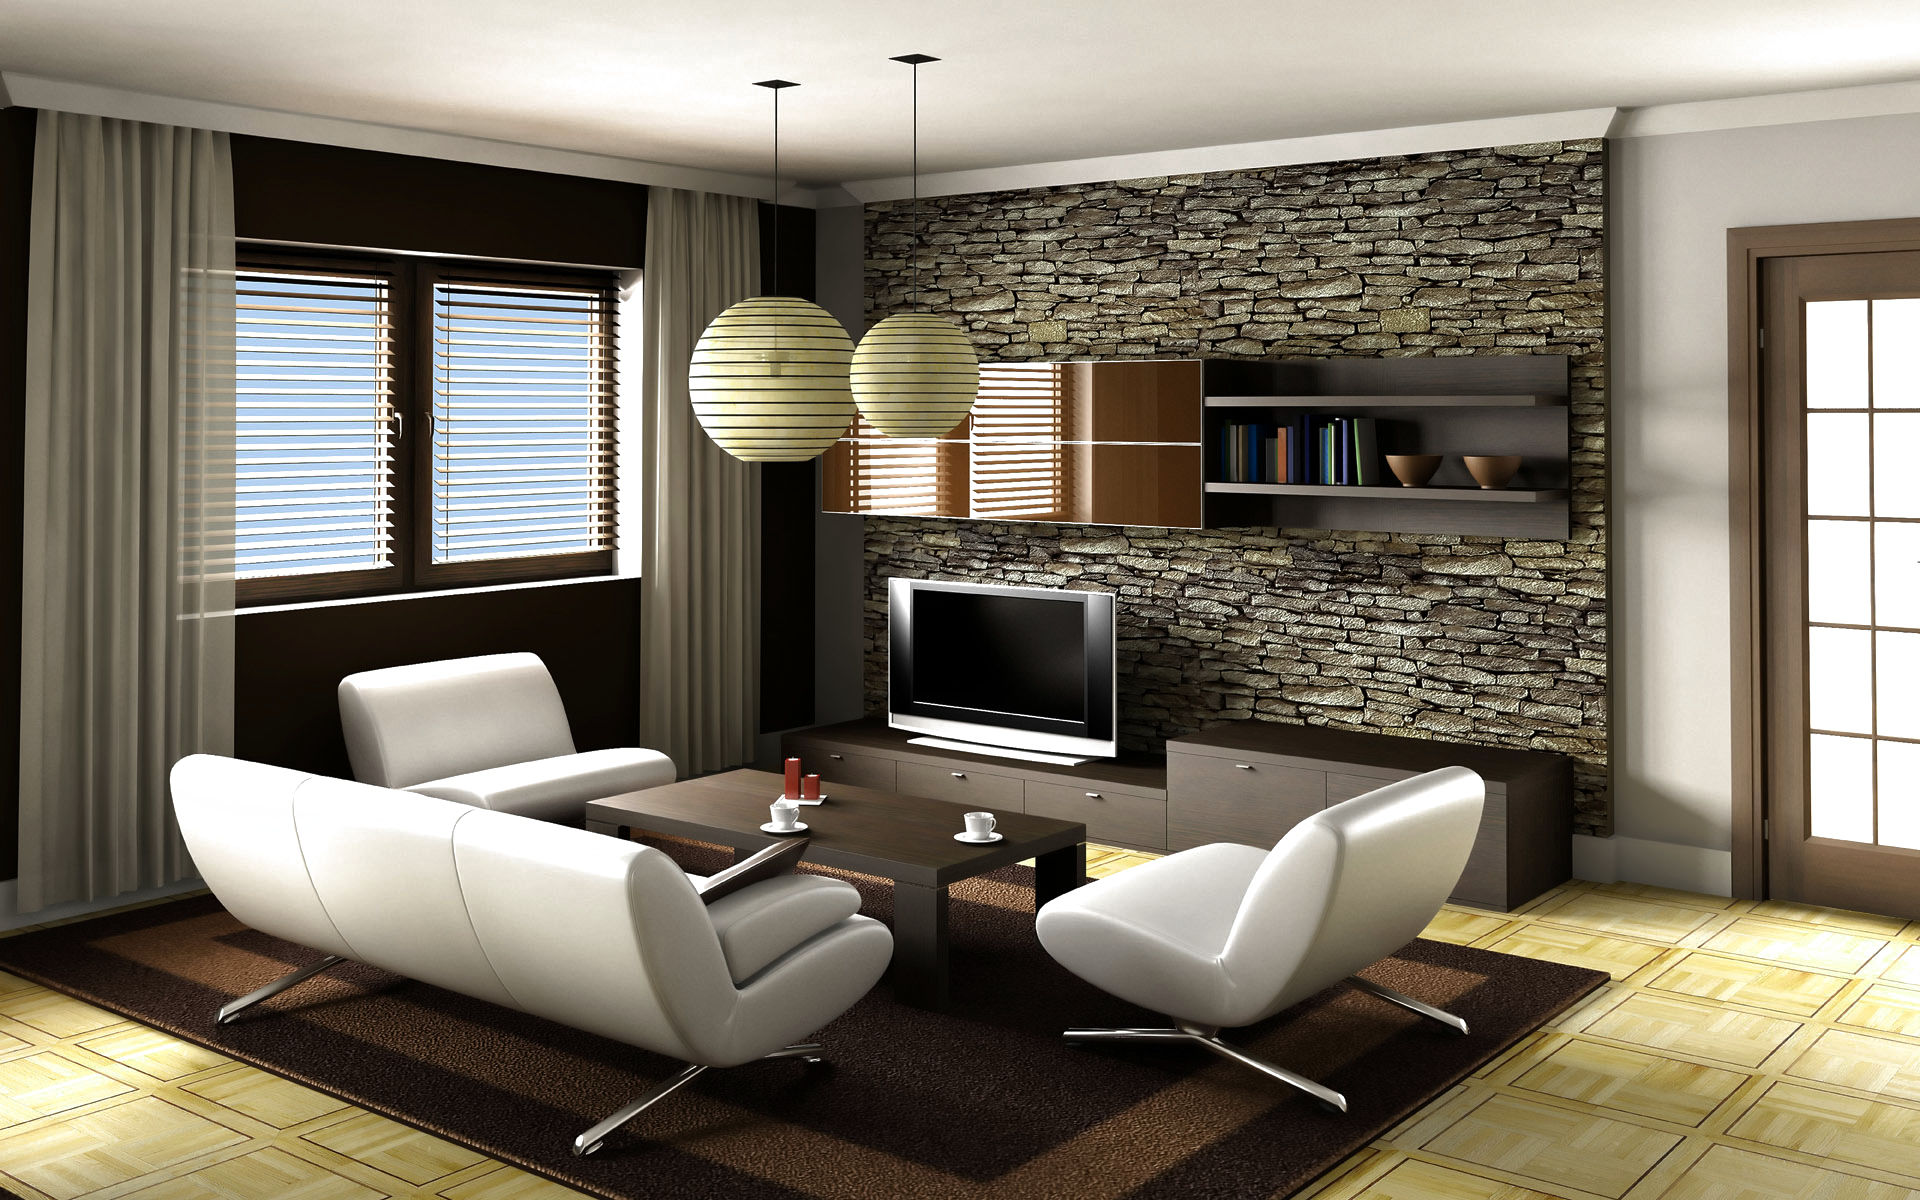 16 modern living room furniture ideas design hgnv com for In living furniture